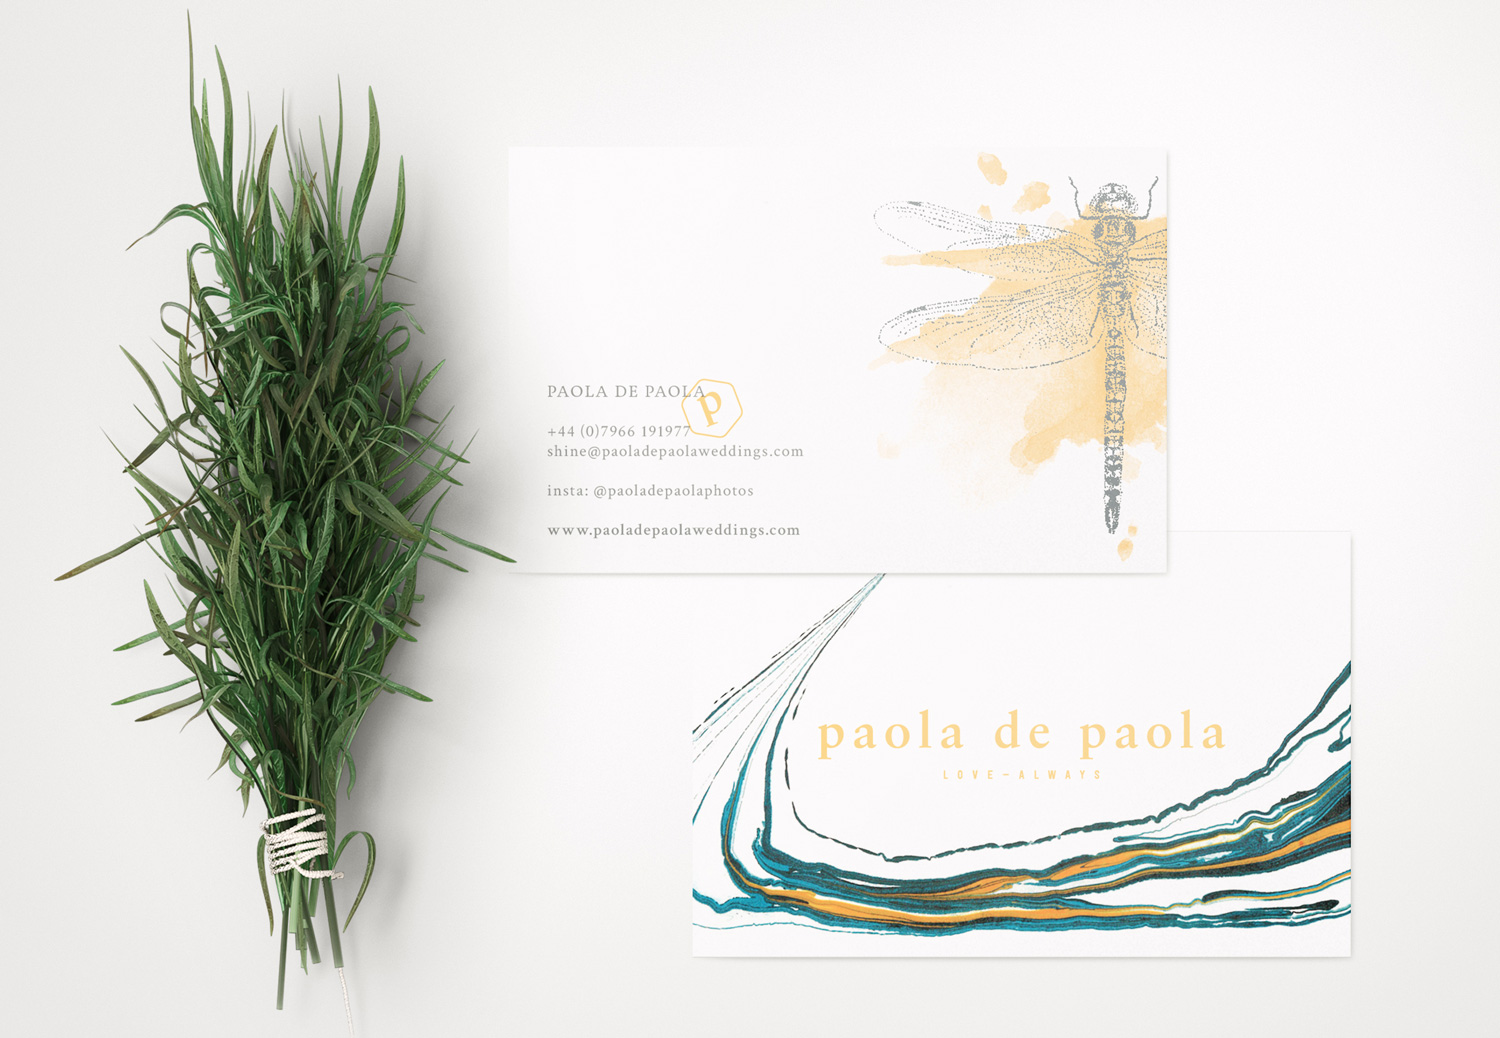 Paola de Paola wedding photographer, logo design and branding by Ditto Creative, branding agency Kent